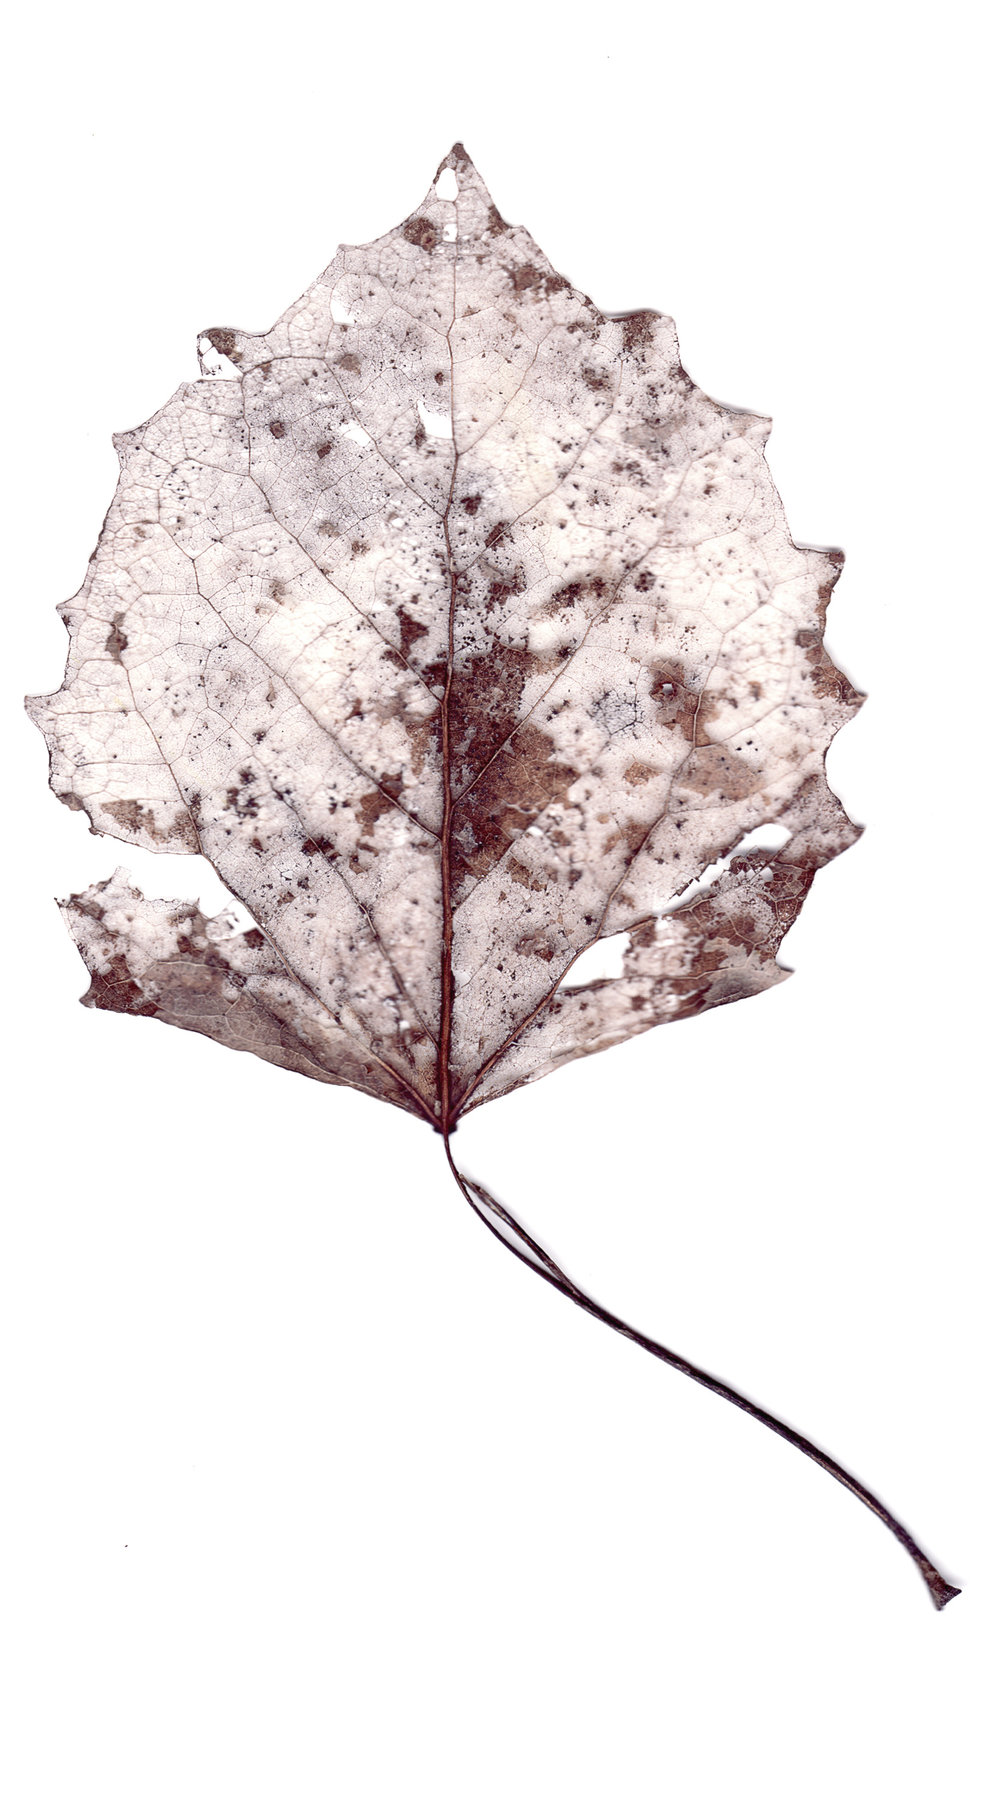 Collected Poems, Aspen Leaves0006  , Ink Jet print on Washi paper, 13x27 inches, 2007, ed. 3